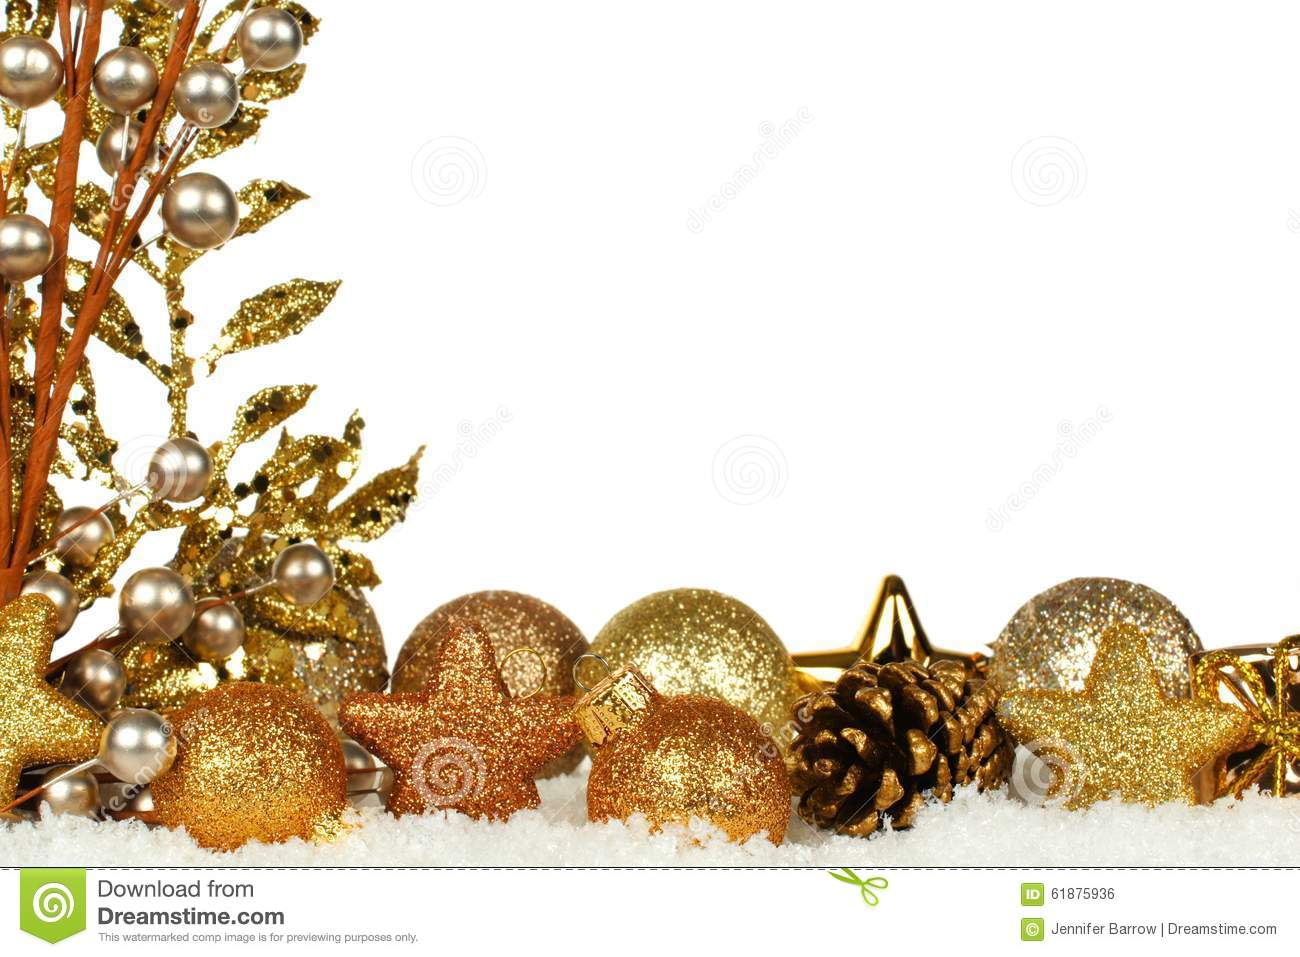 Golden Christmas Border With Ornaments And Branches In Fresh Snow ...